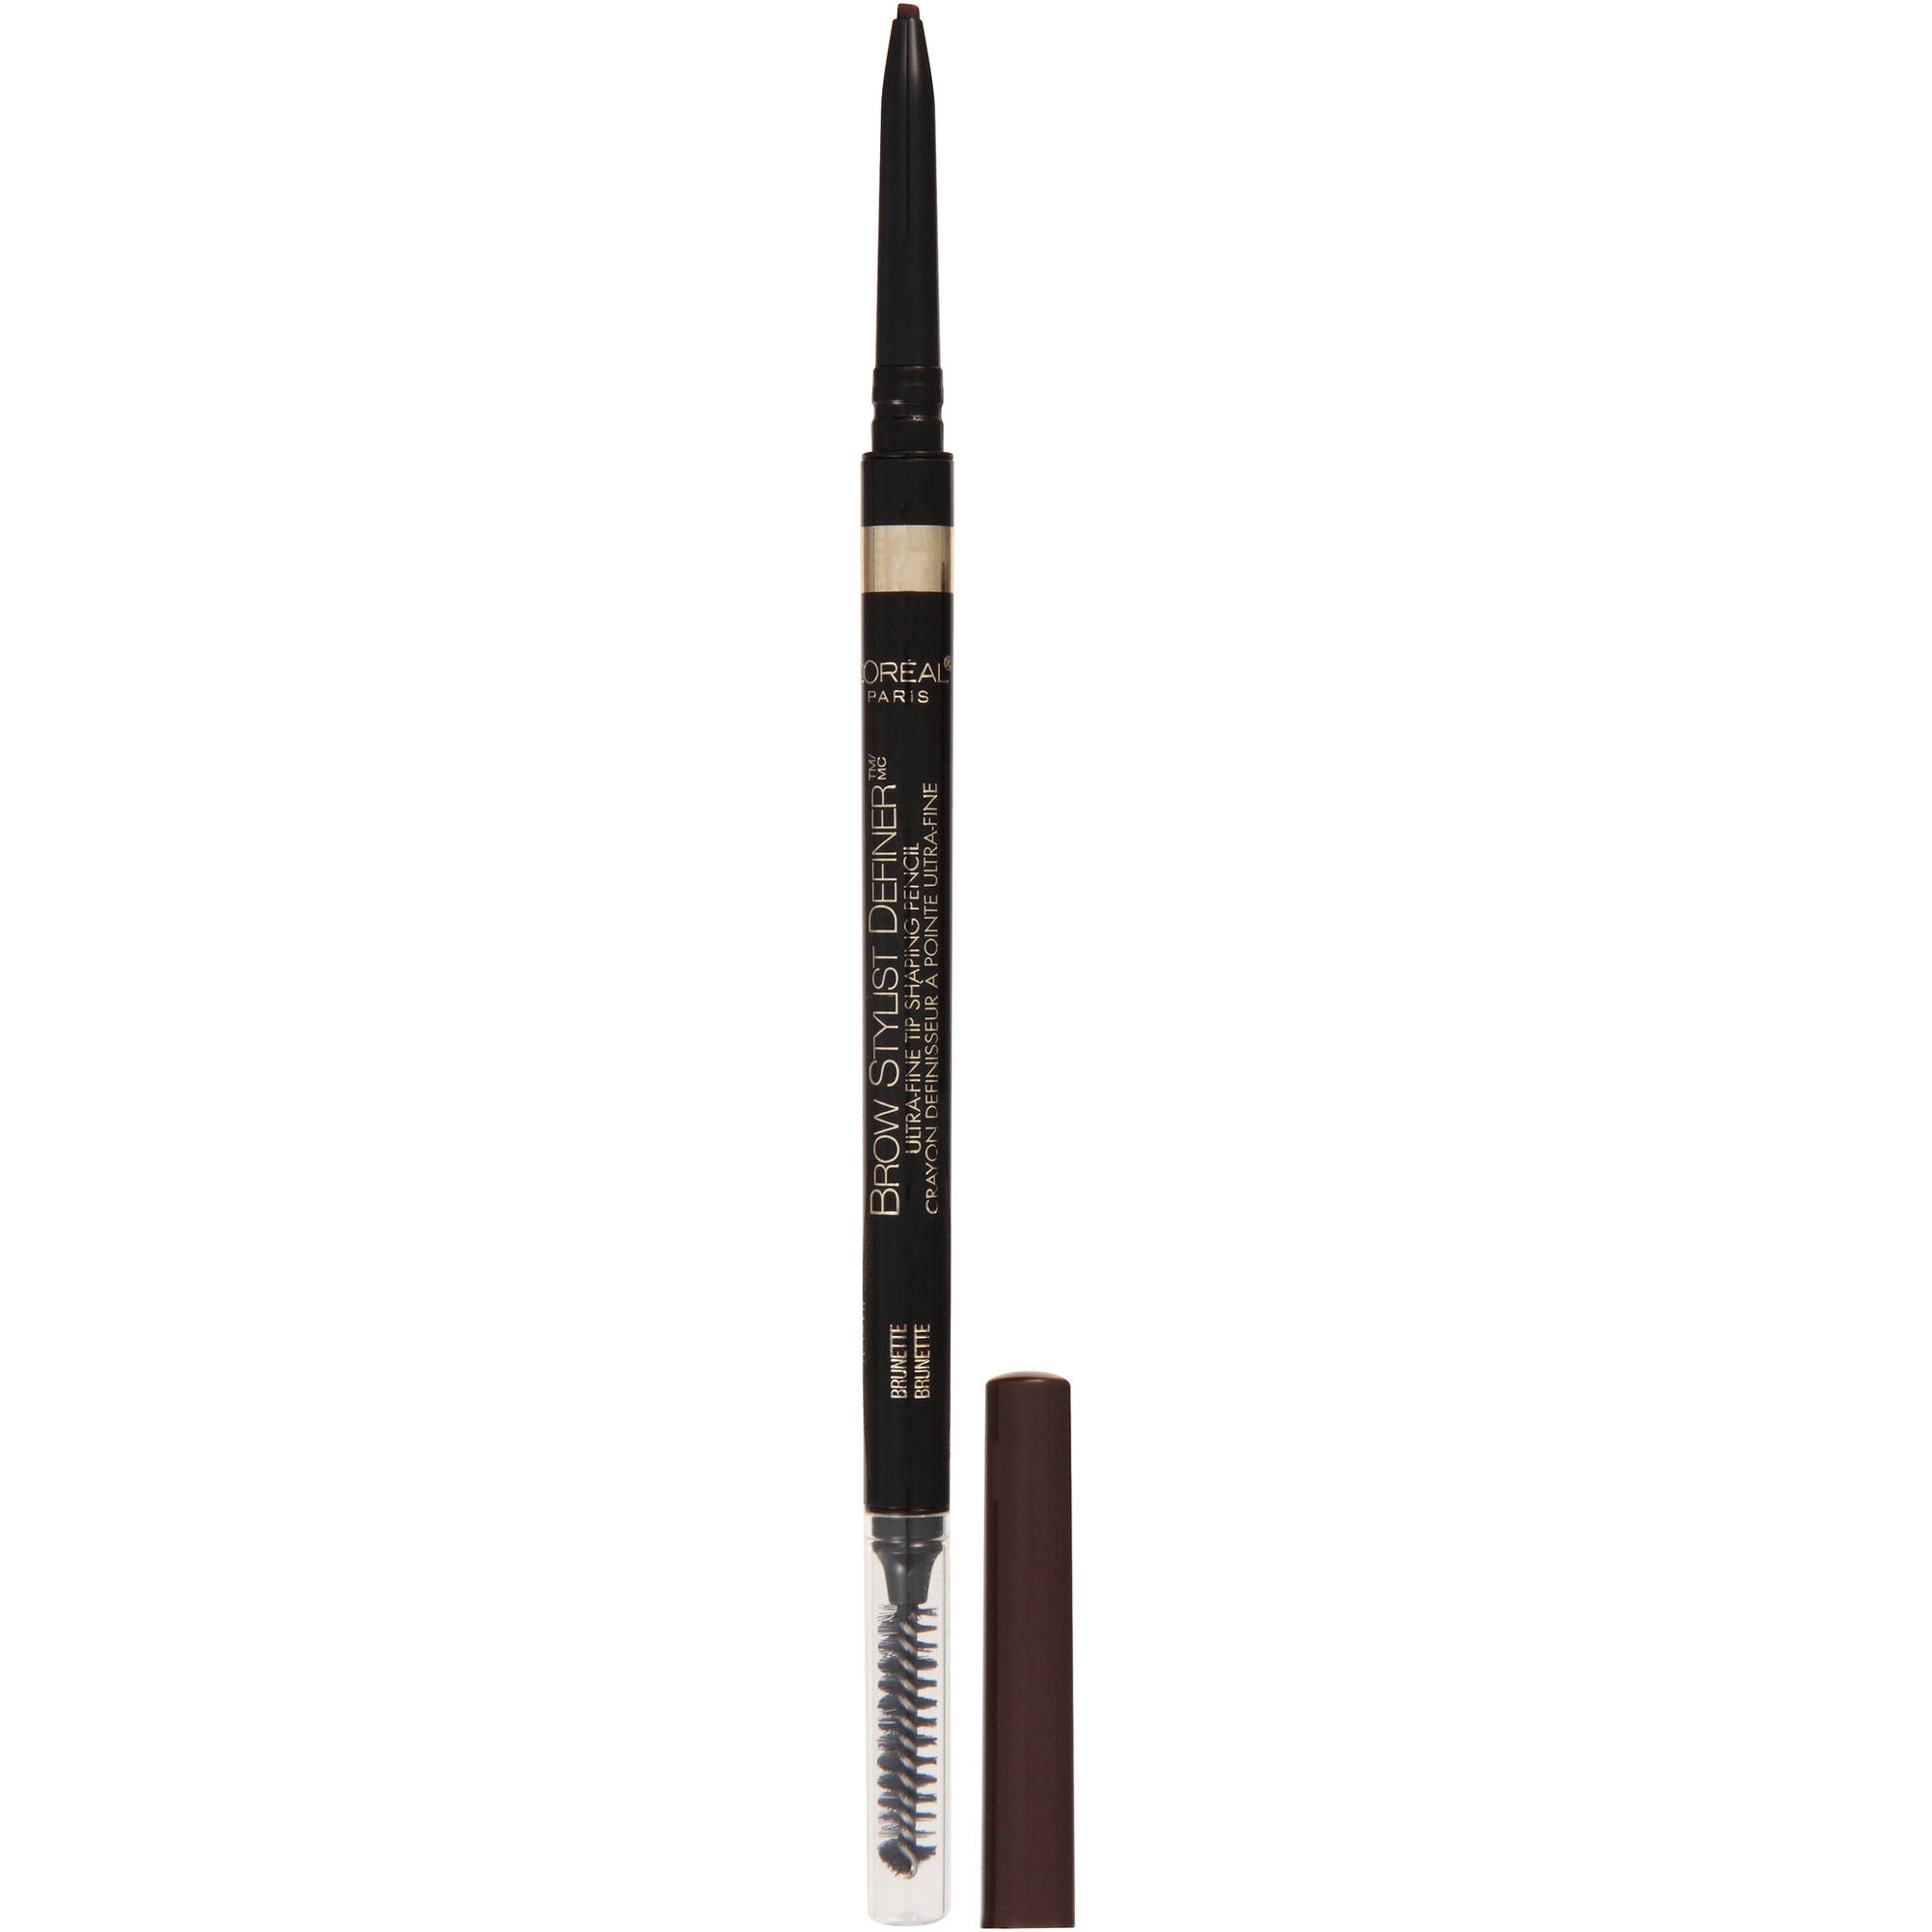 L'Oreal Paris Brow Stylist Definer Pencil, Brunette